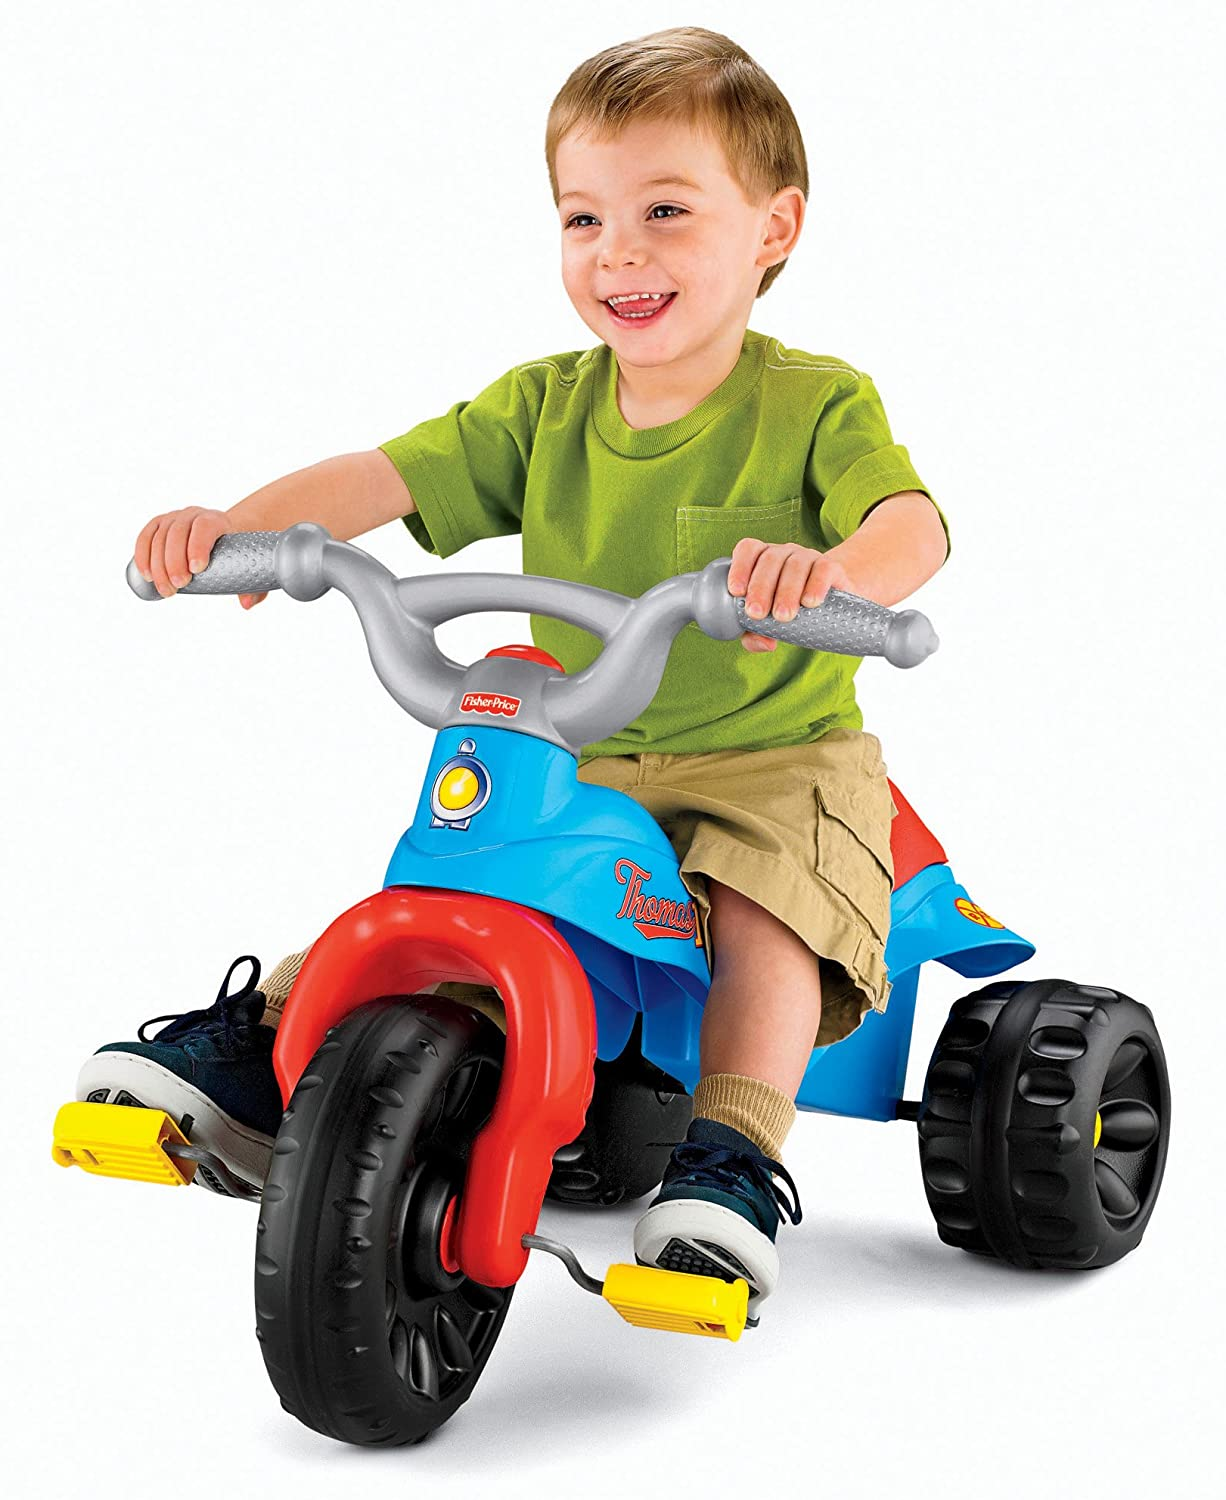 Buy Fisher Price Thomas And Friends Tough Trike Online At Low Prices